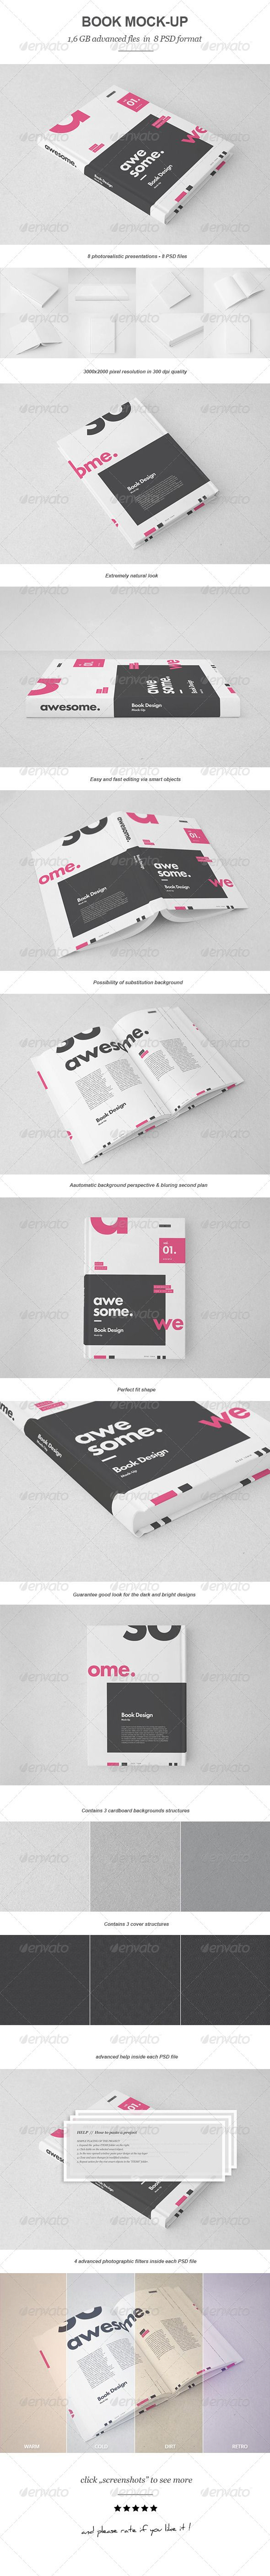 14 best book mock up set images on Pinterest | Book covers, Cover ...